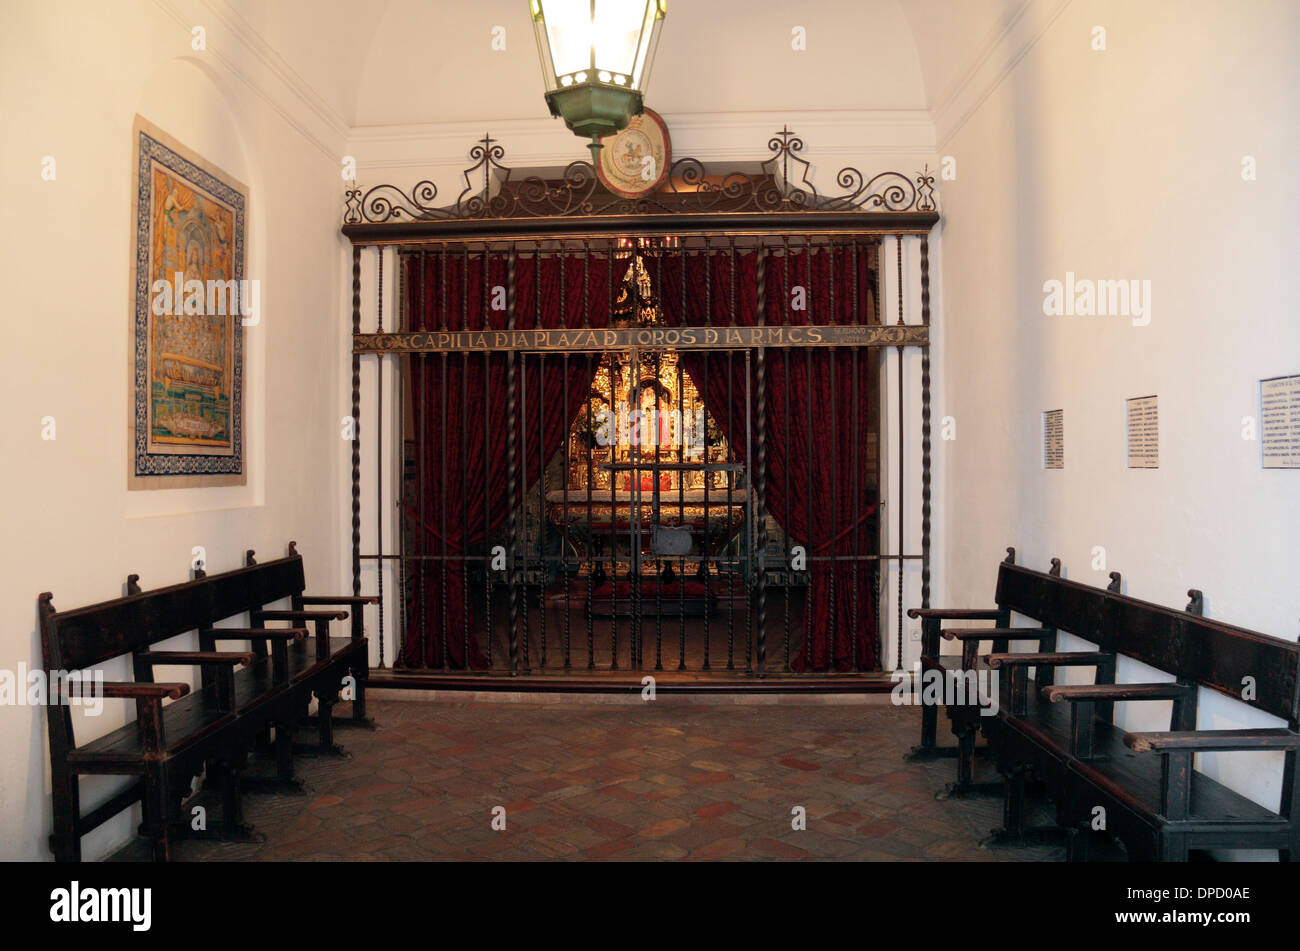 The Chapel inside the Plaza de Toros de la Real Maestranza de Caballería de Sevilla (bull ring), in Seville, Andalusia, Spain. - Stock Image